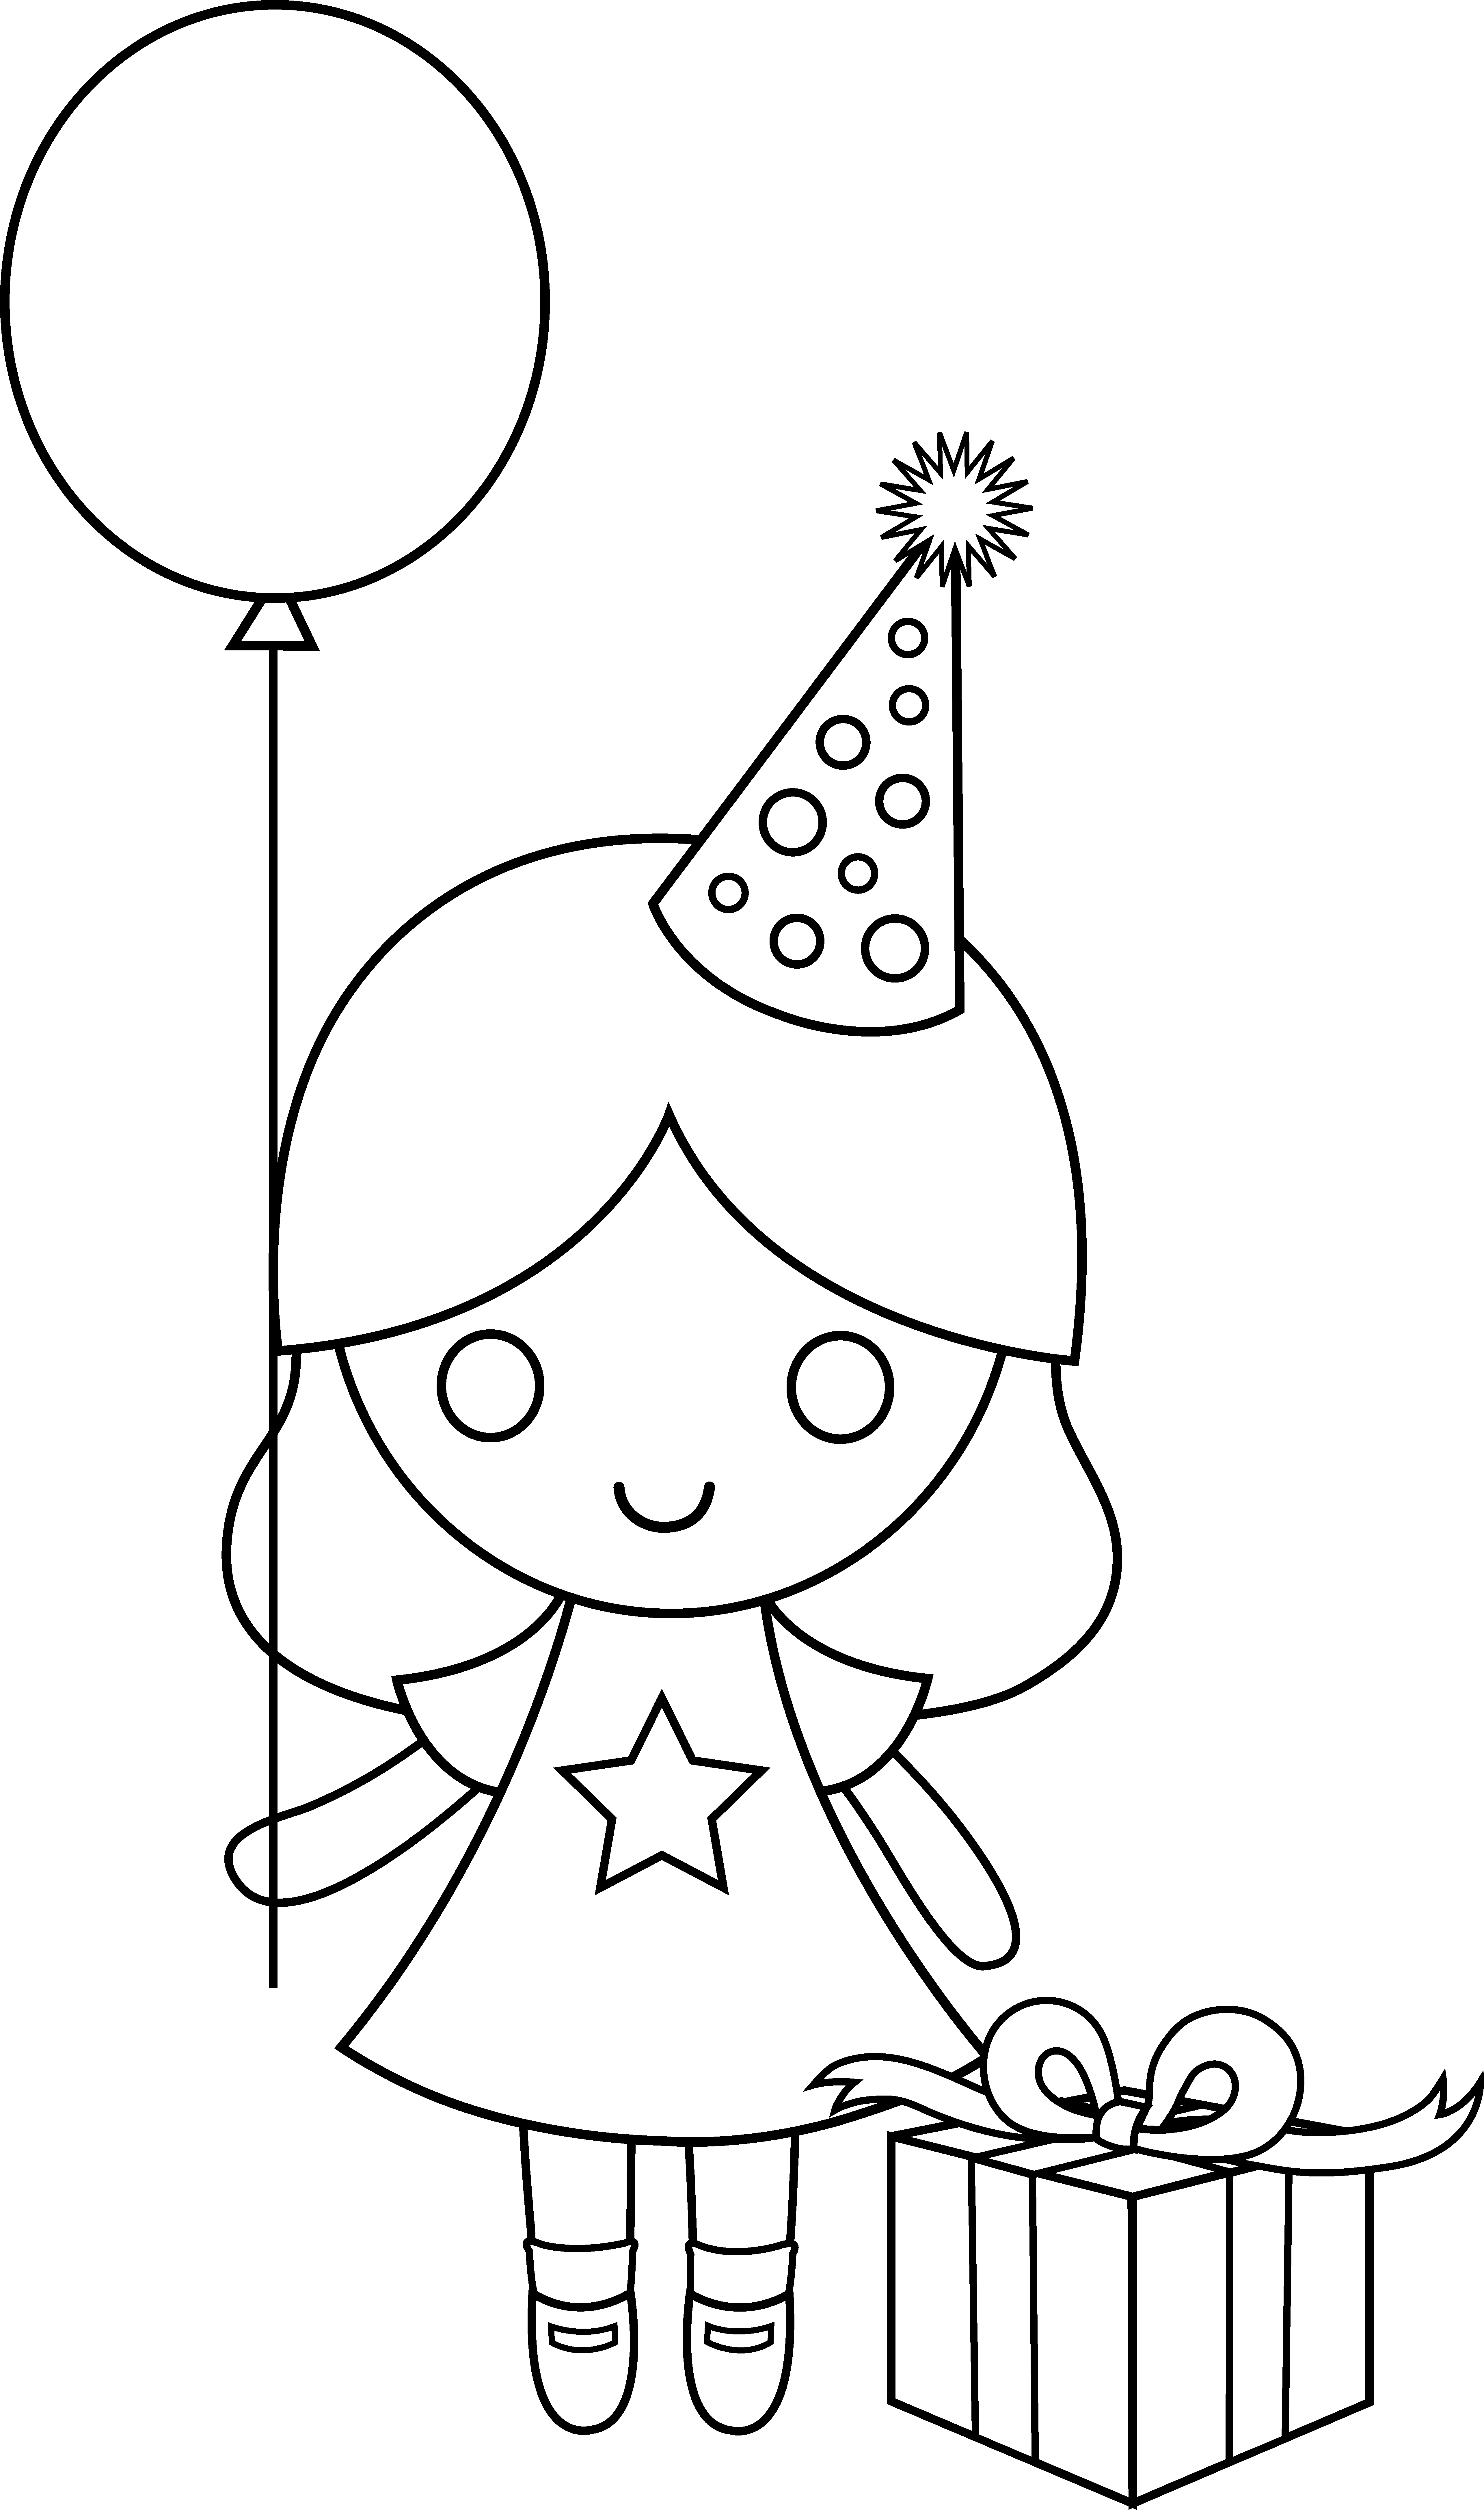 birthday girl coloring pages birthday coloring pages birthday girl coloring pages